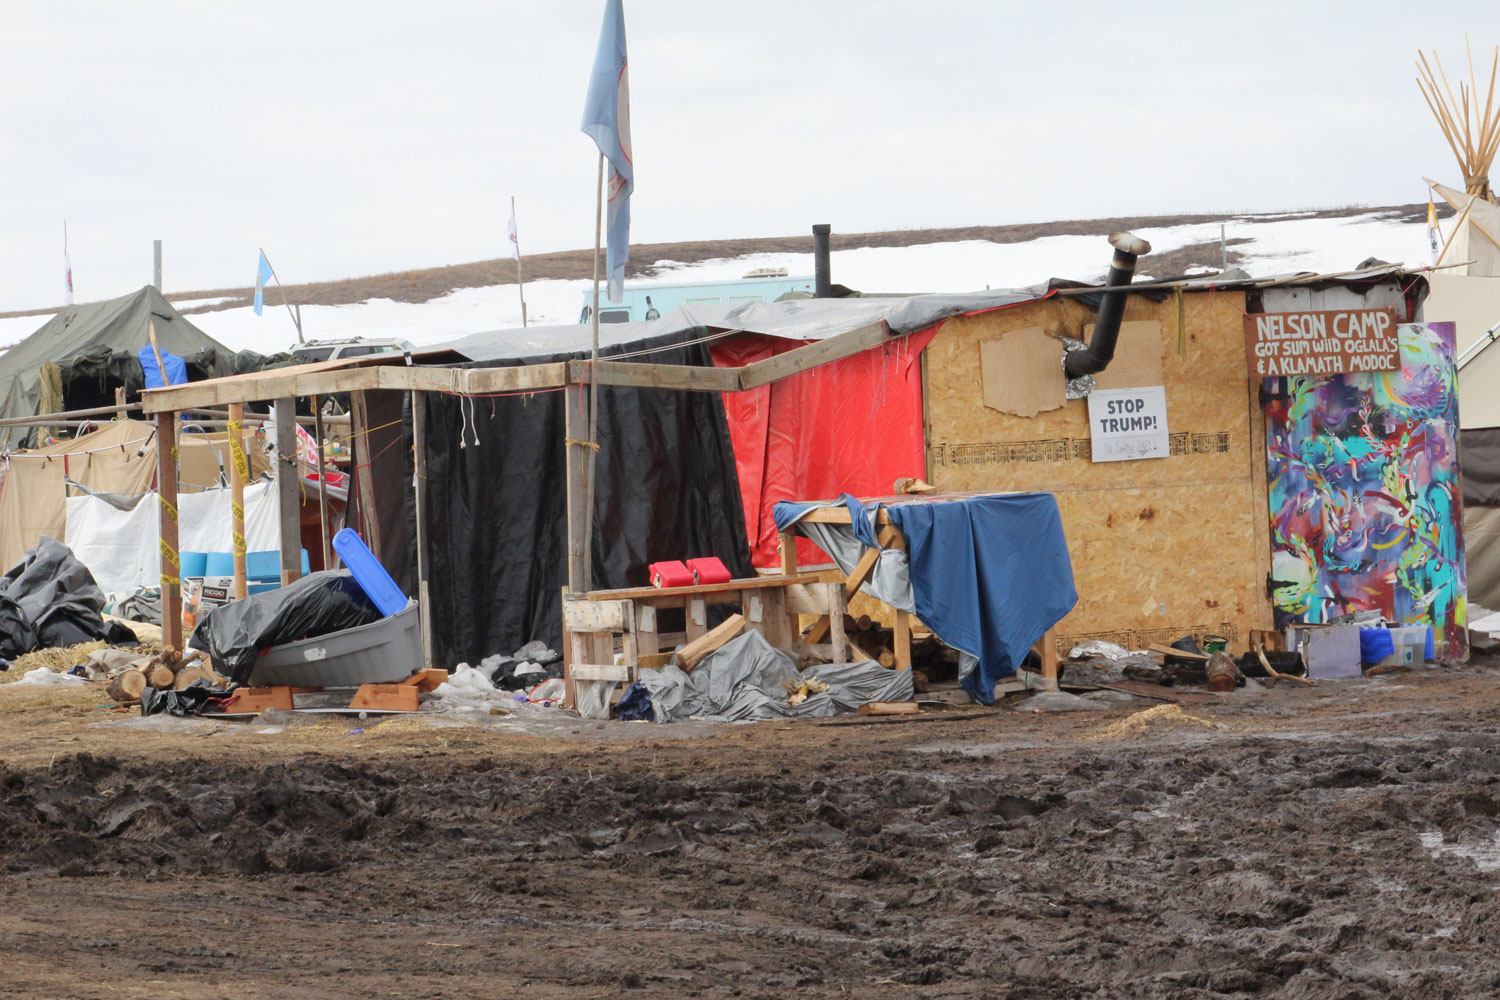 A water protector's home